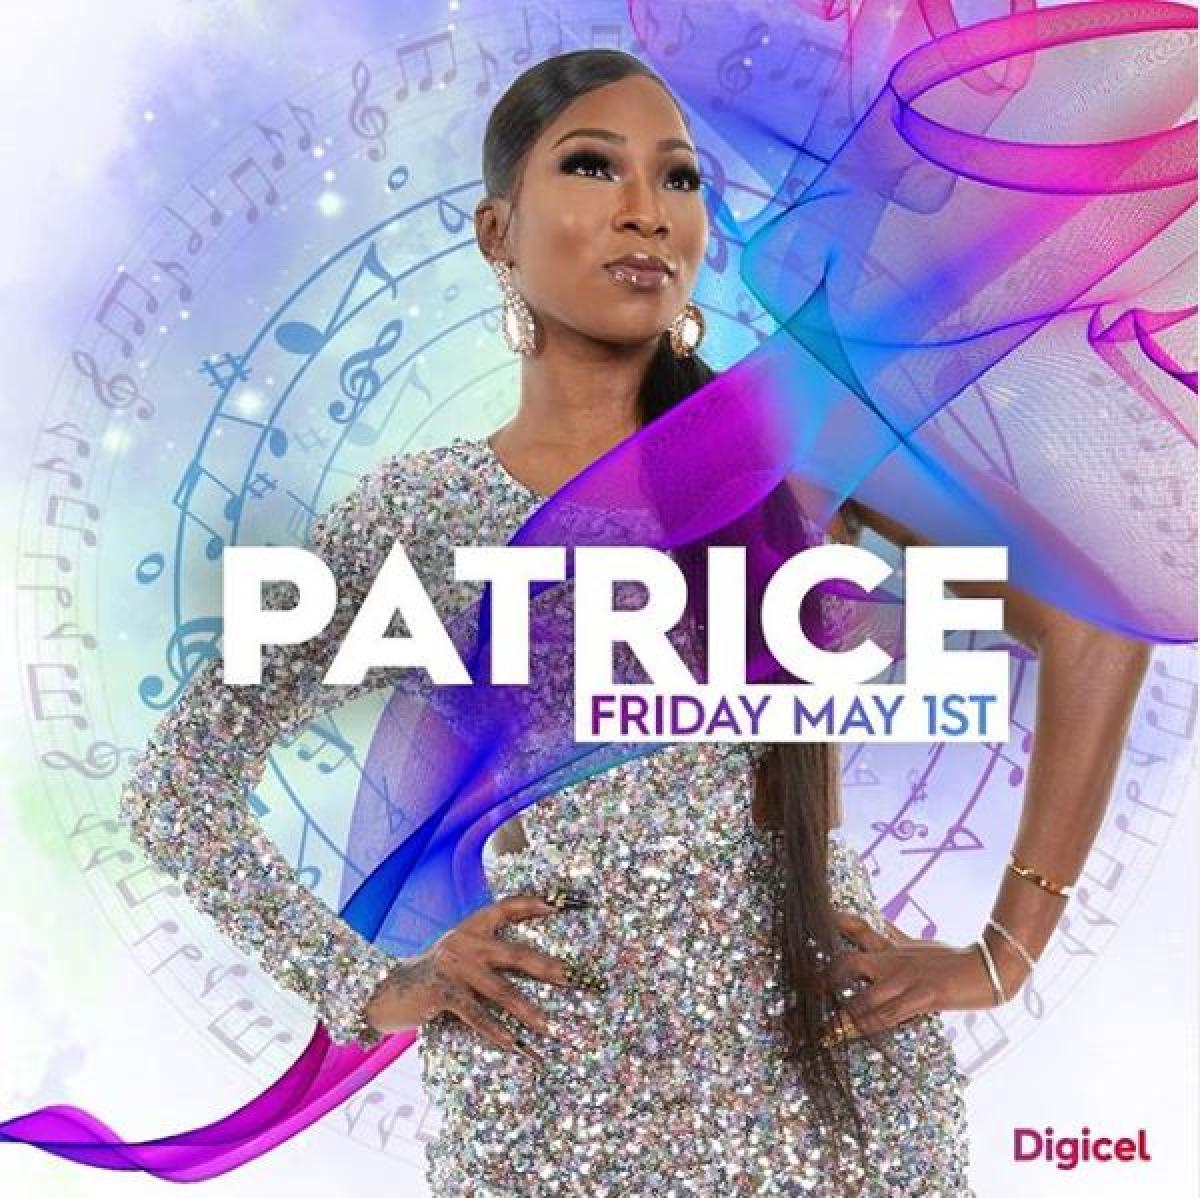 Digicel Online Cameo Concert with Patrice Roberts flyer or graphic.